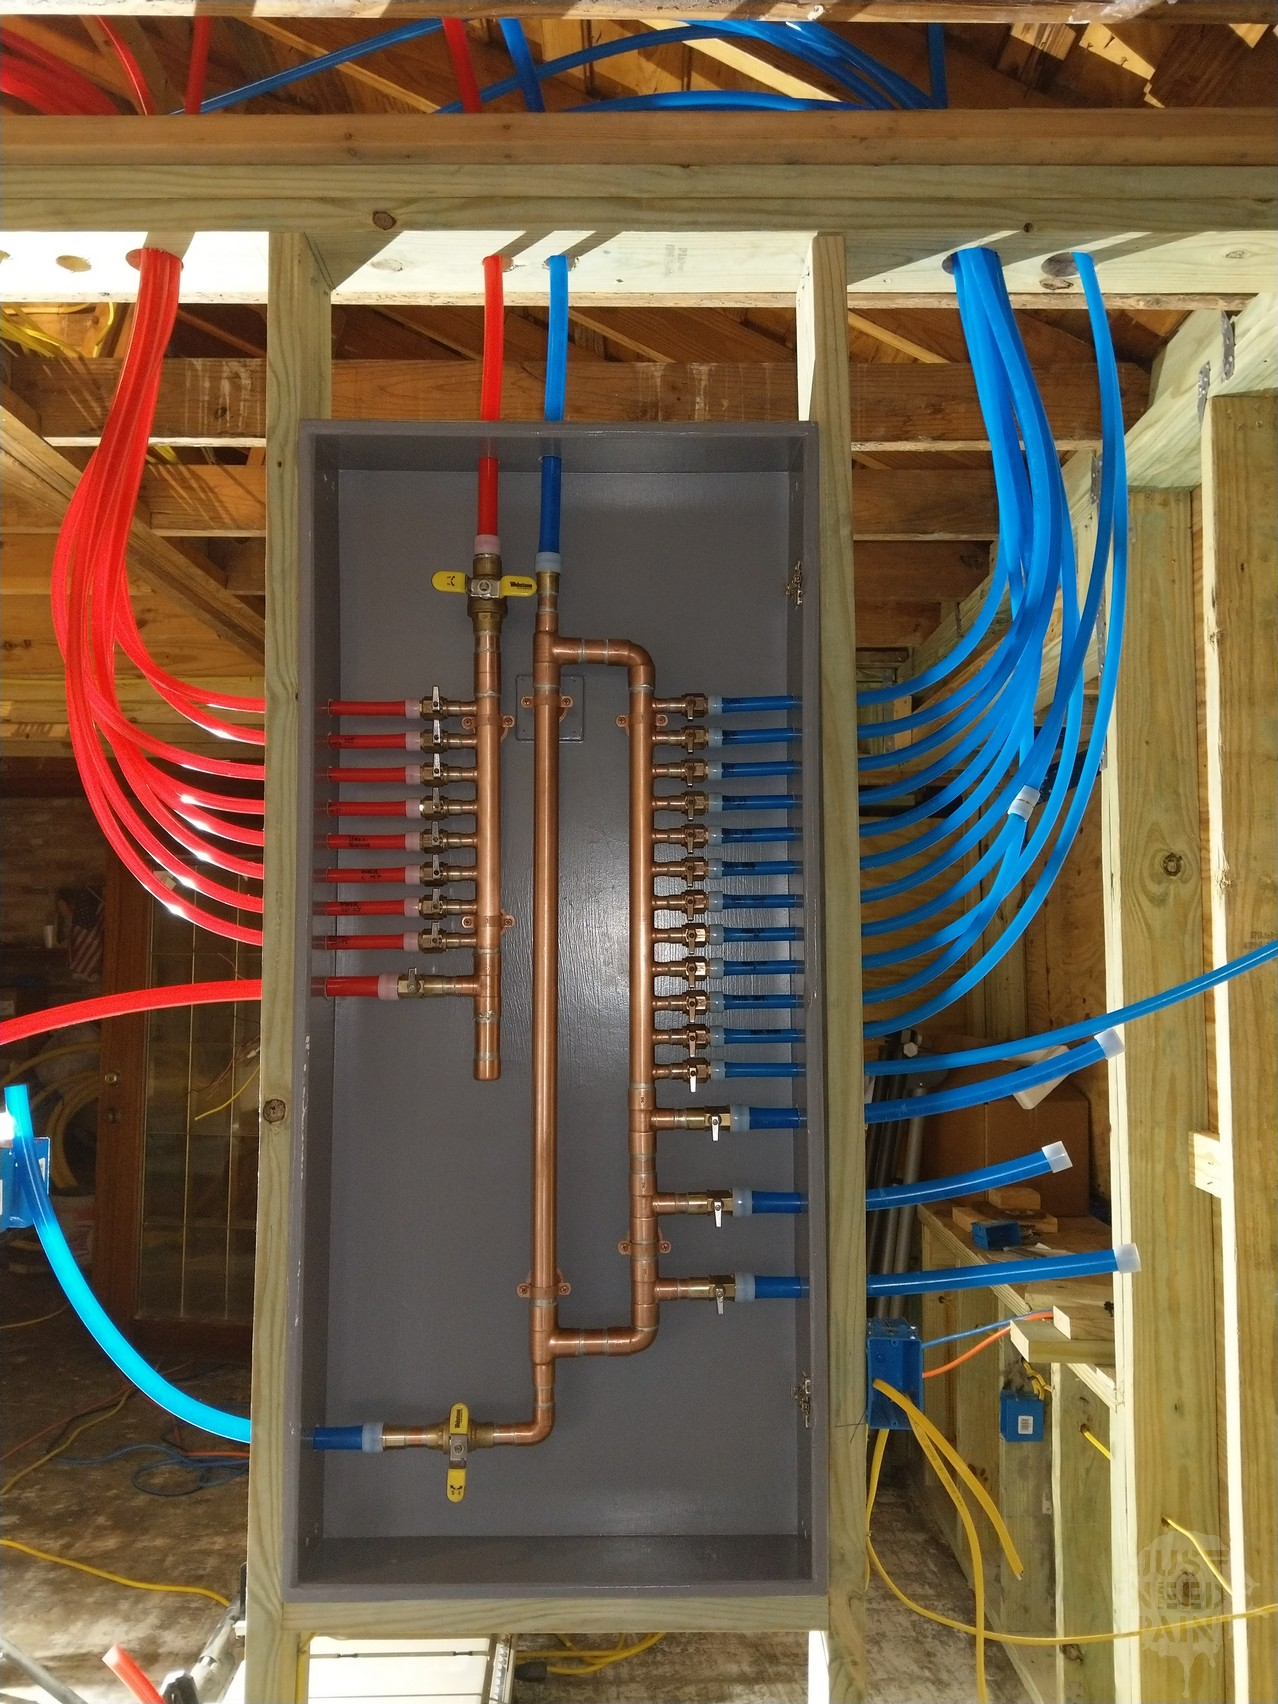 How To Build A Pex Manifold  A Step-by-step Guide